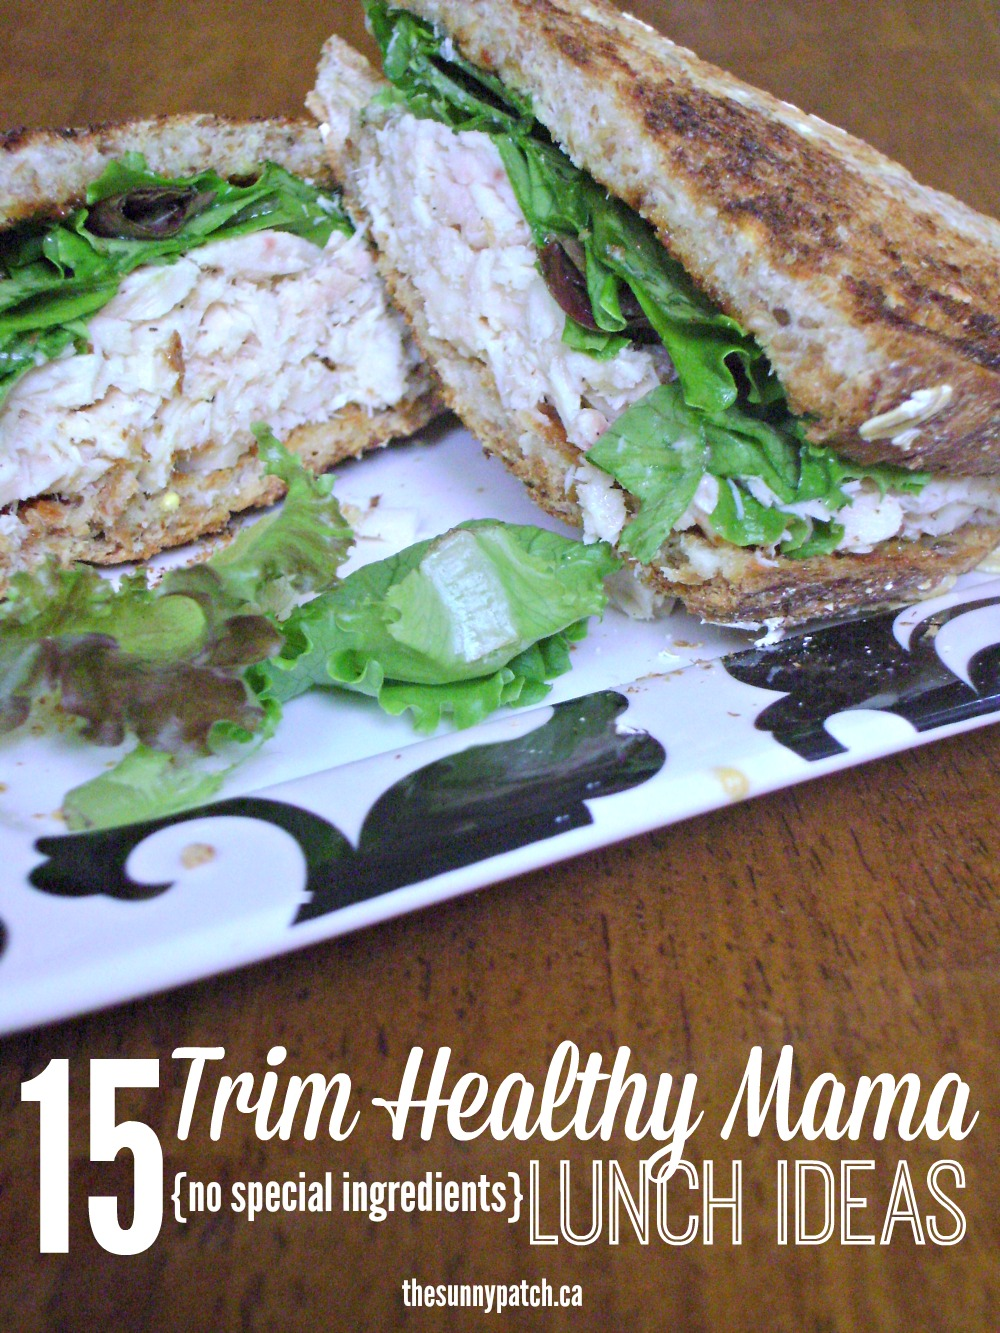 graphic regarding Trim Healthy Mama Printable Food List called Slim Wholesome Mama: Lunches no exclusive substances Content